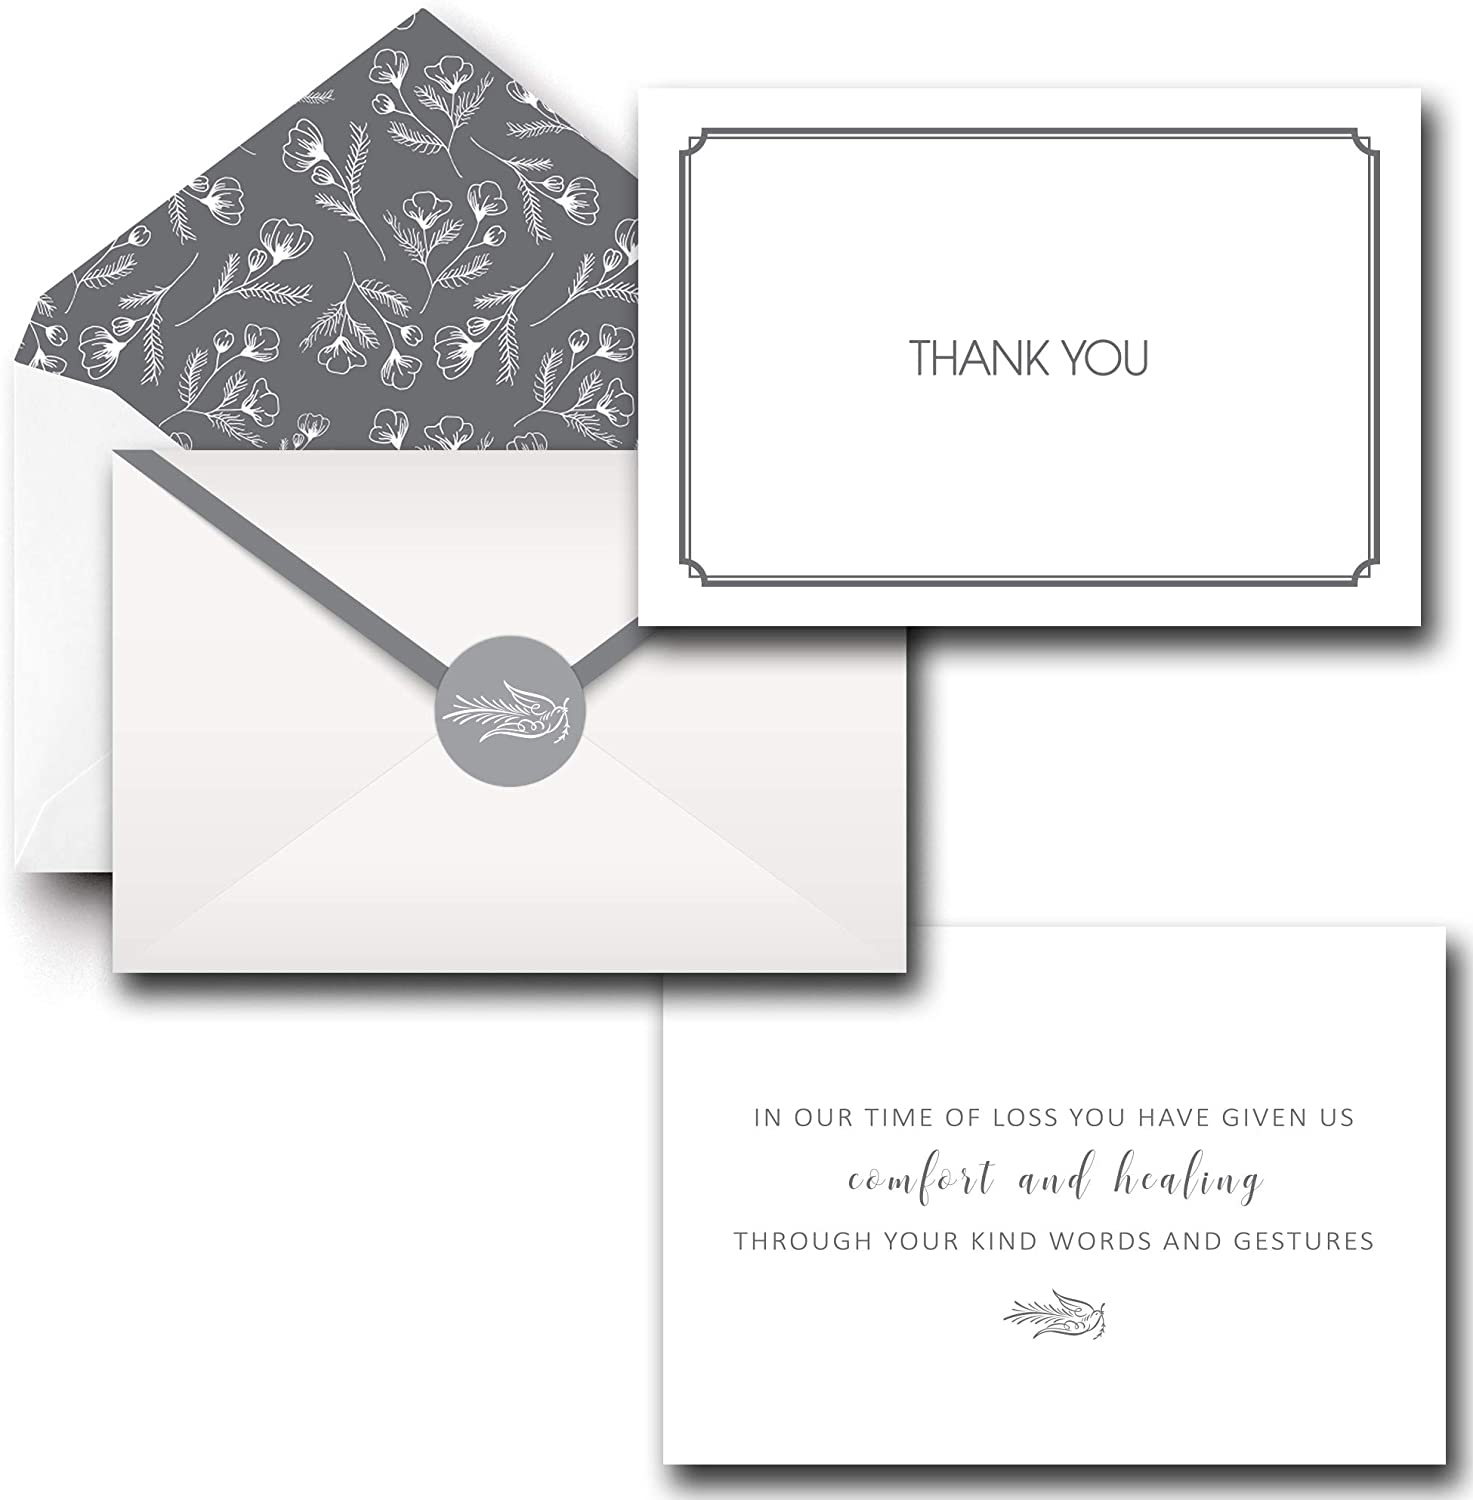 Funeral Thank You Cards With Envelopes, Set of 20 Bulk 4x6 Sympathy Notes Bereavement Card Set with Acknowledgment Message Inside, Include Matching Seal Stickers